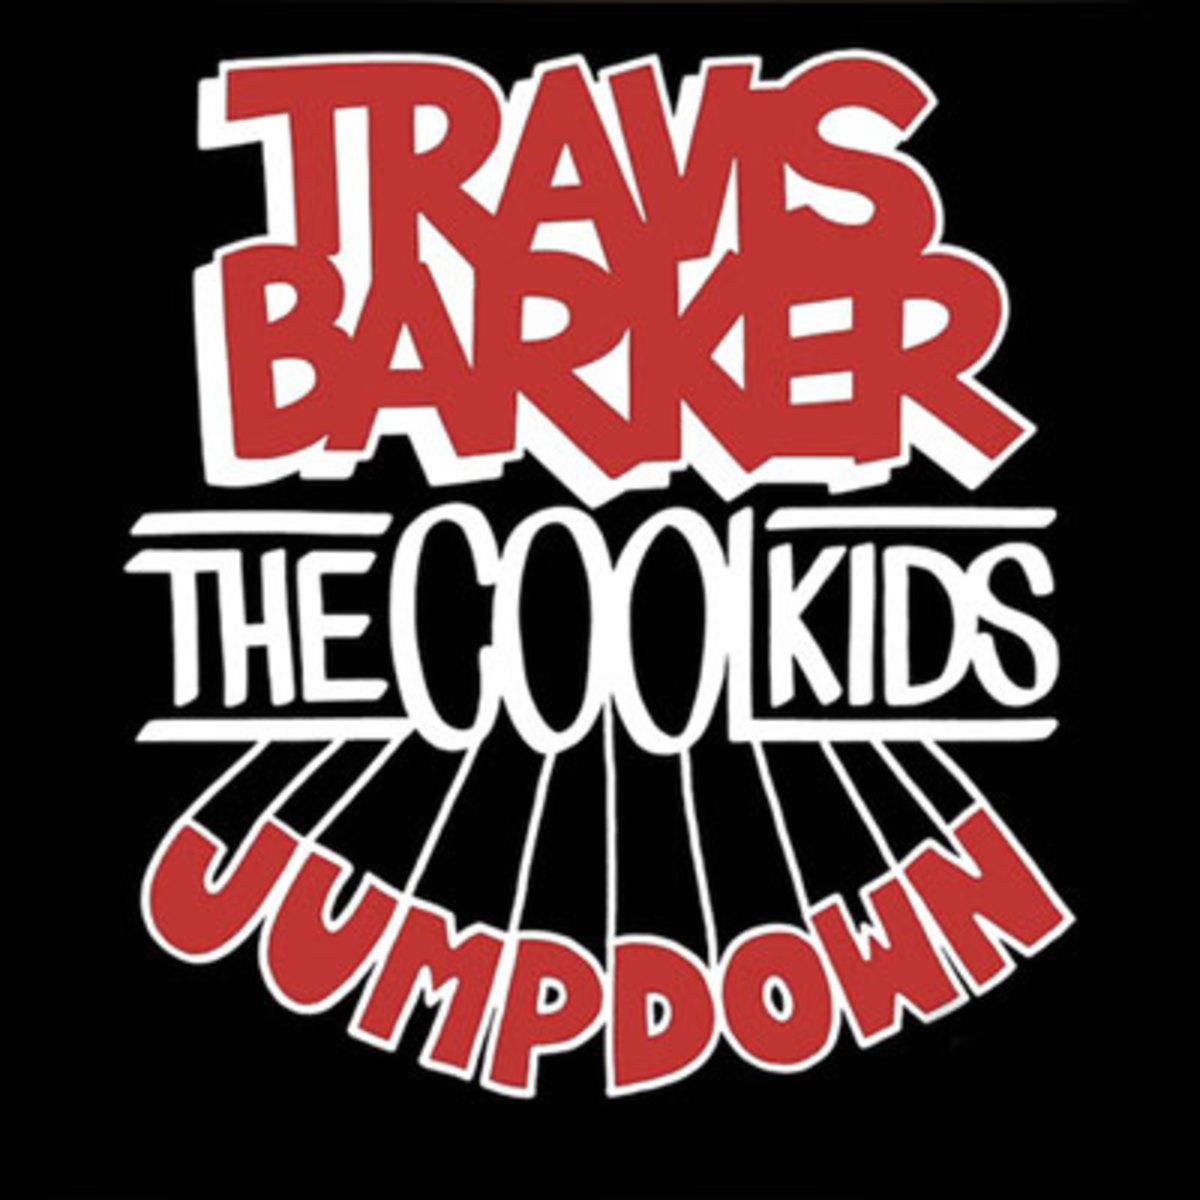 travisbarker-jumpdown.jpg